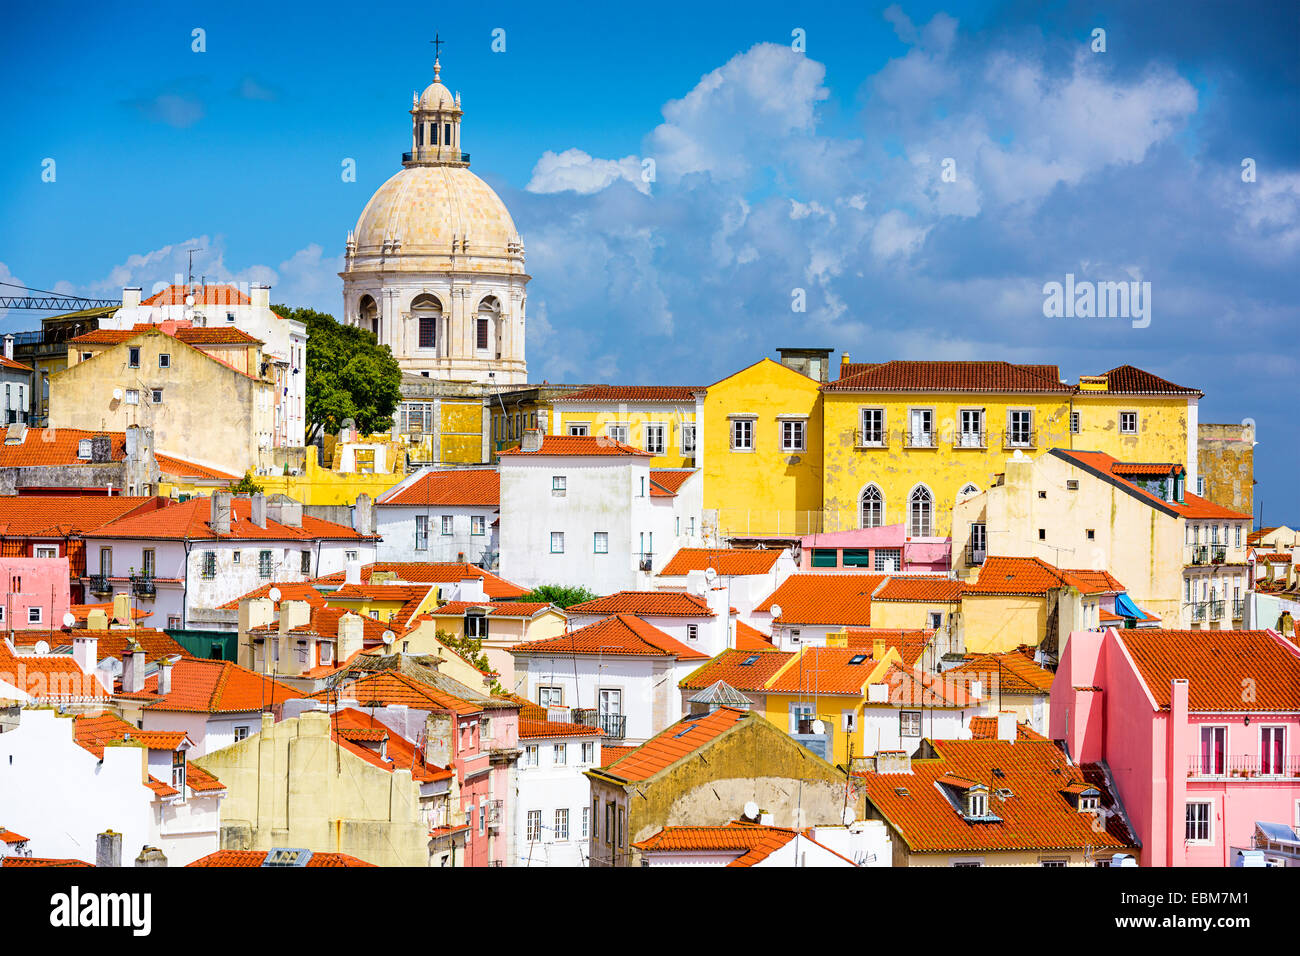 Lisbon, Portugal skyline at Alfama, the oldest district of the city with the National Pantheon. - Stock Image